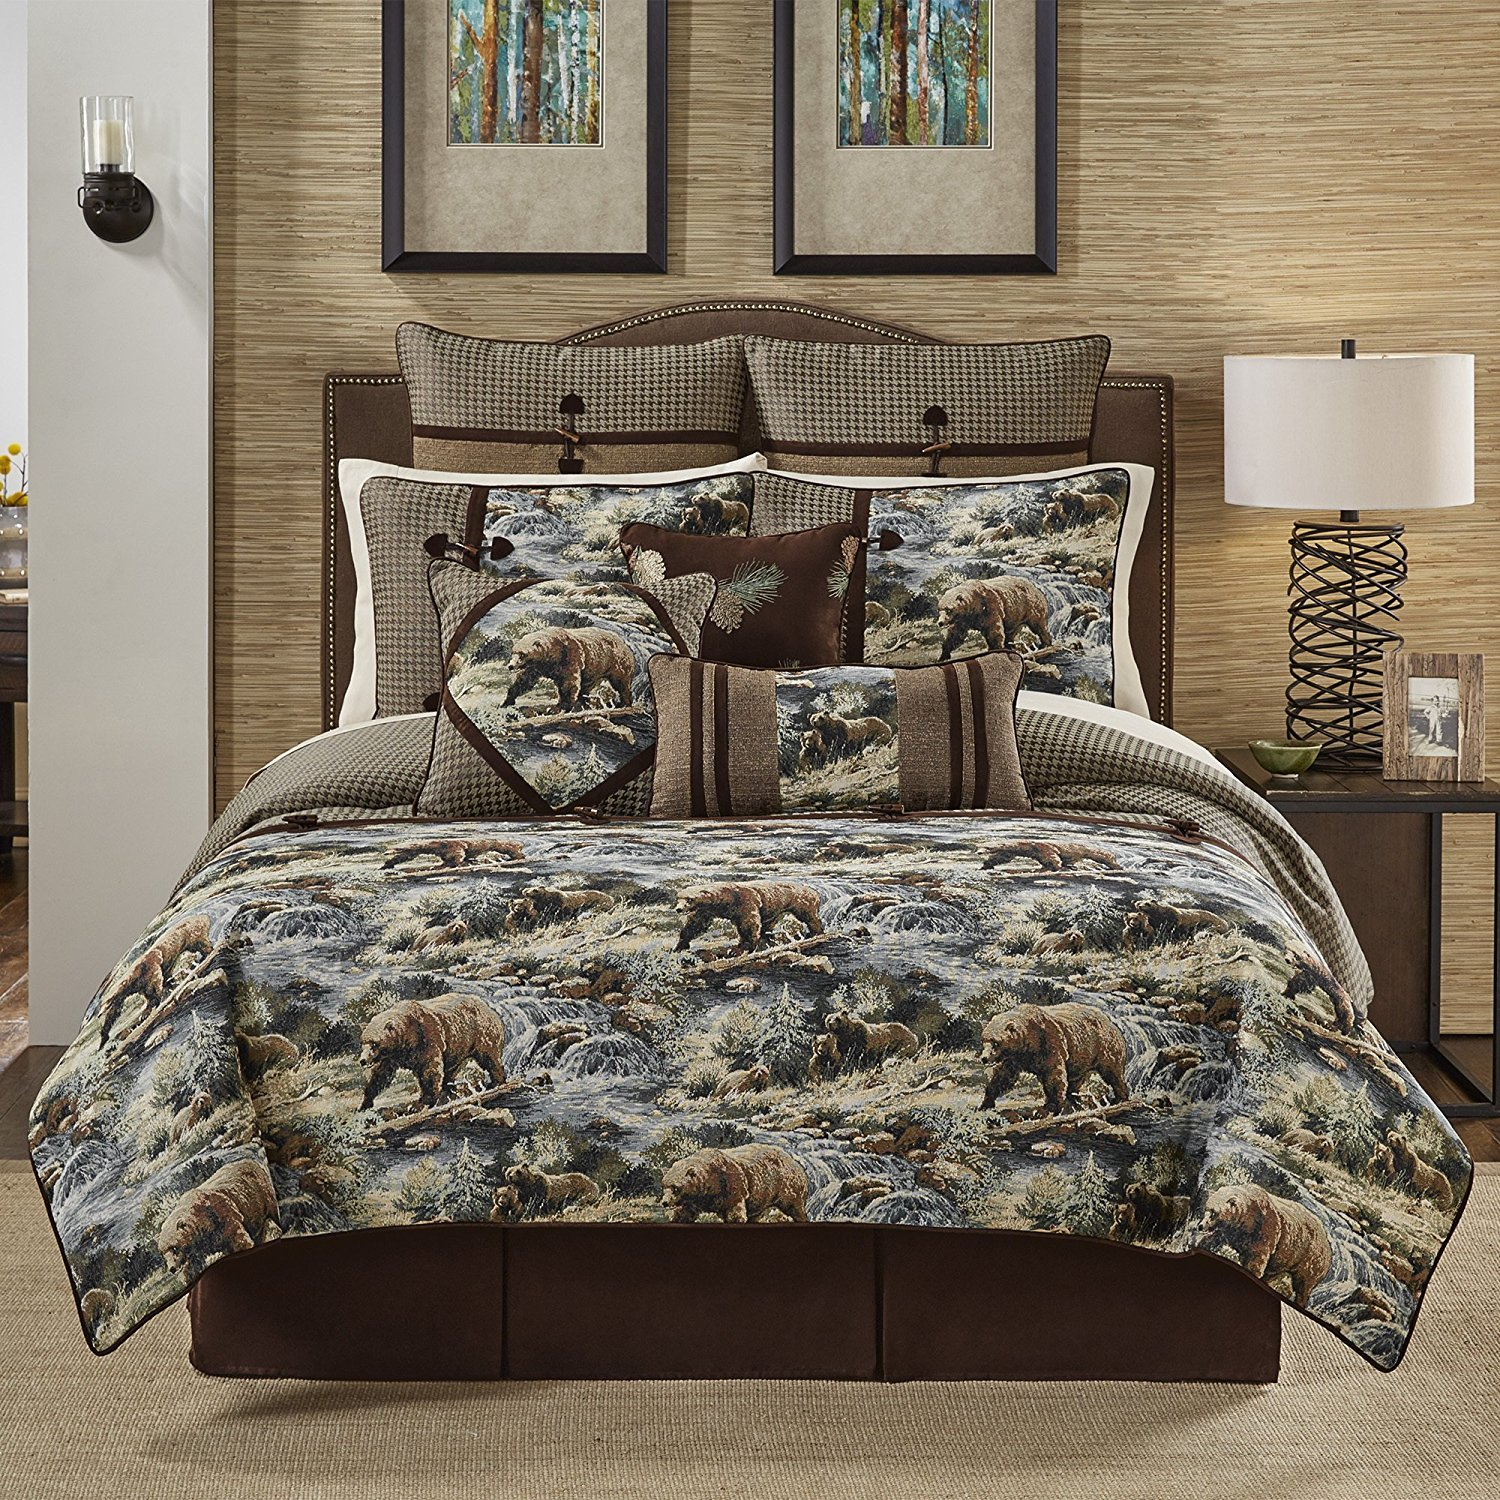 of sets tags full cabins on queen for sale clearance images tag cabin design imposing bedding size astounding comforters boys